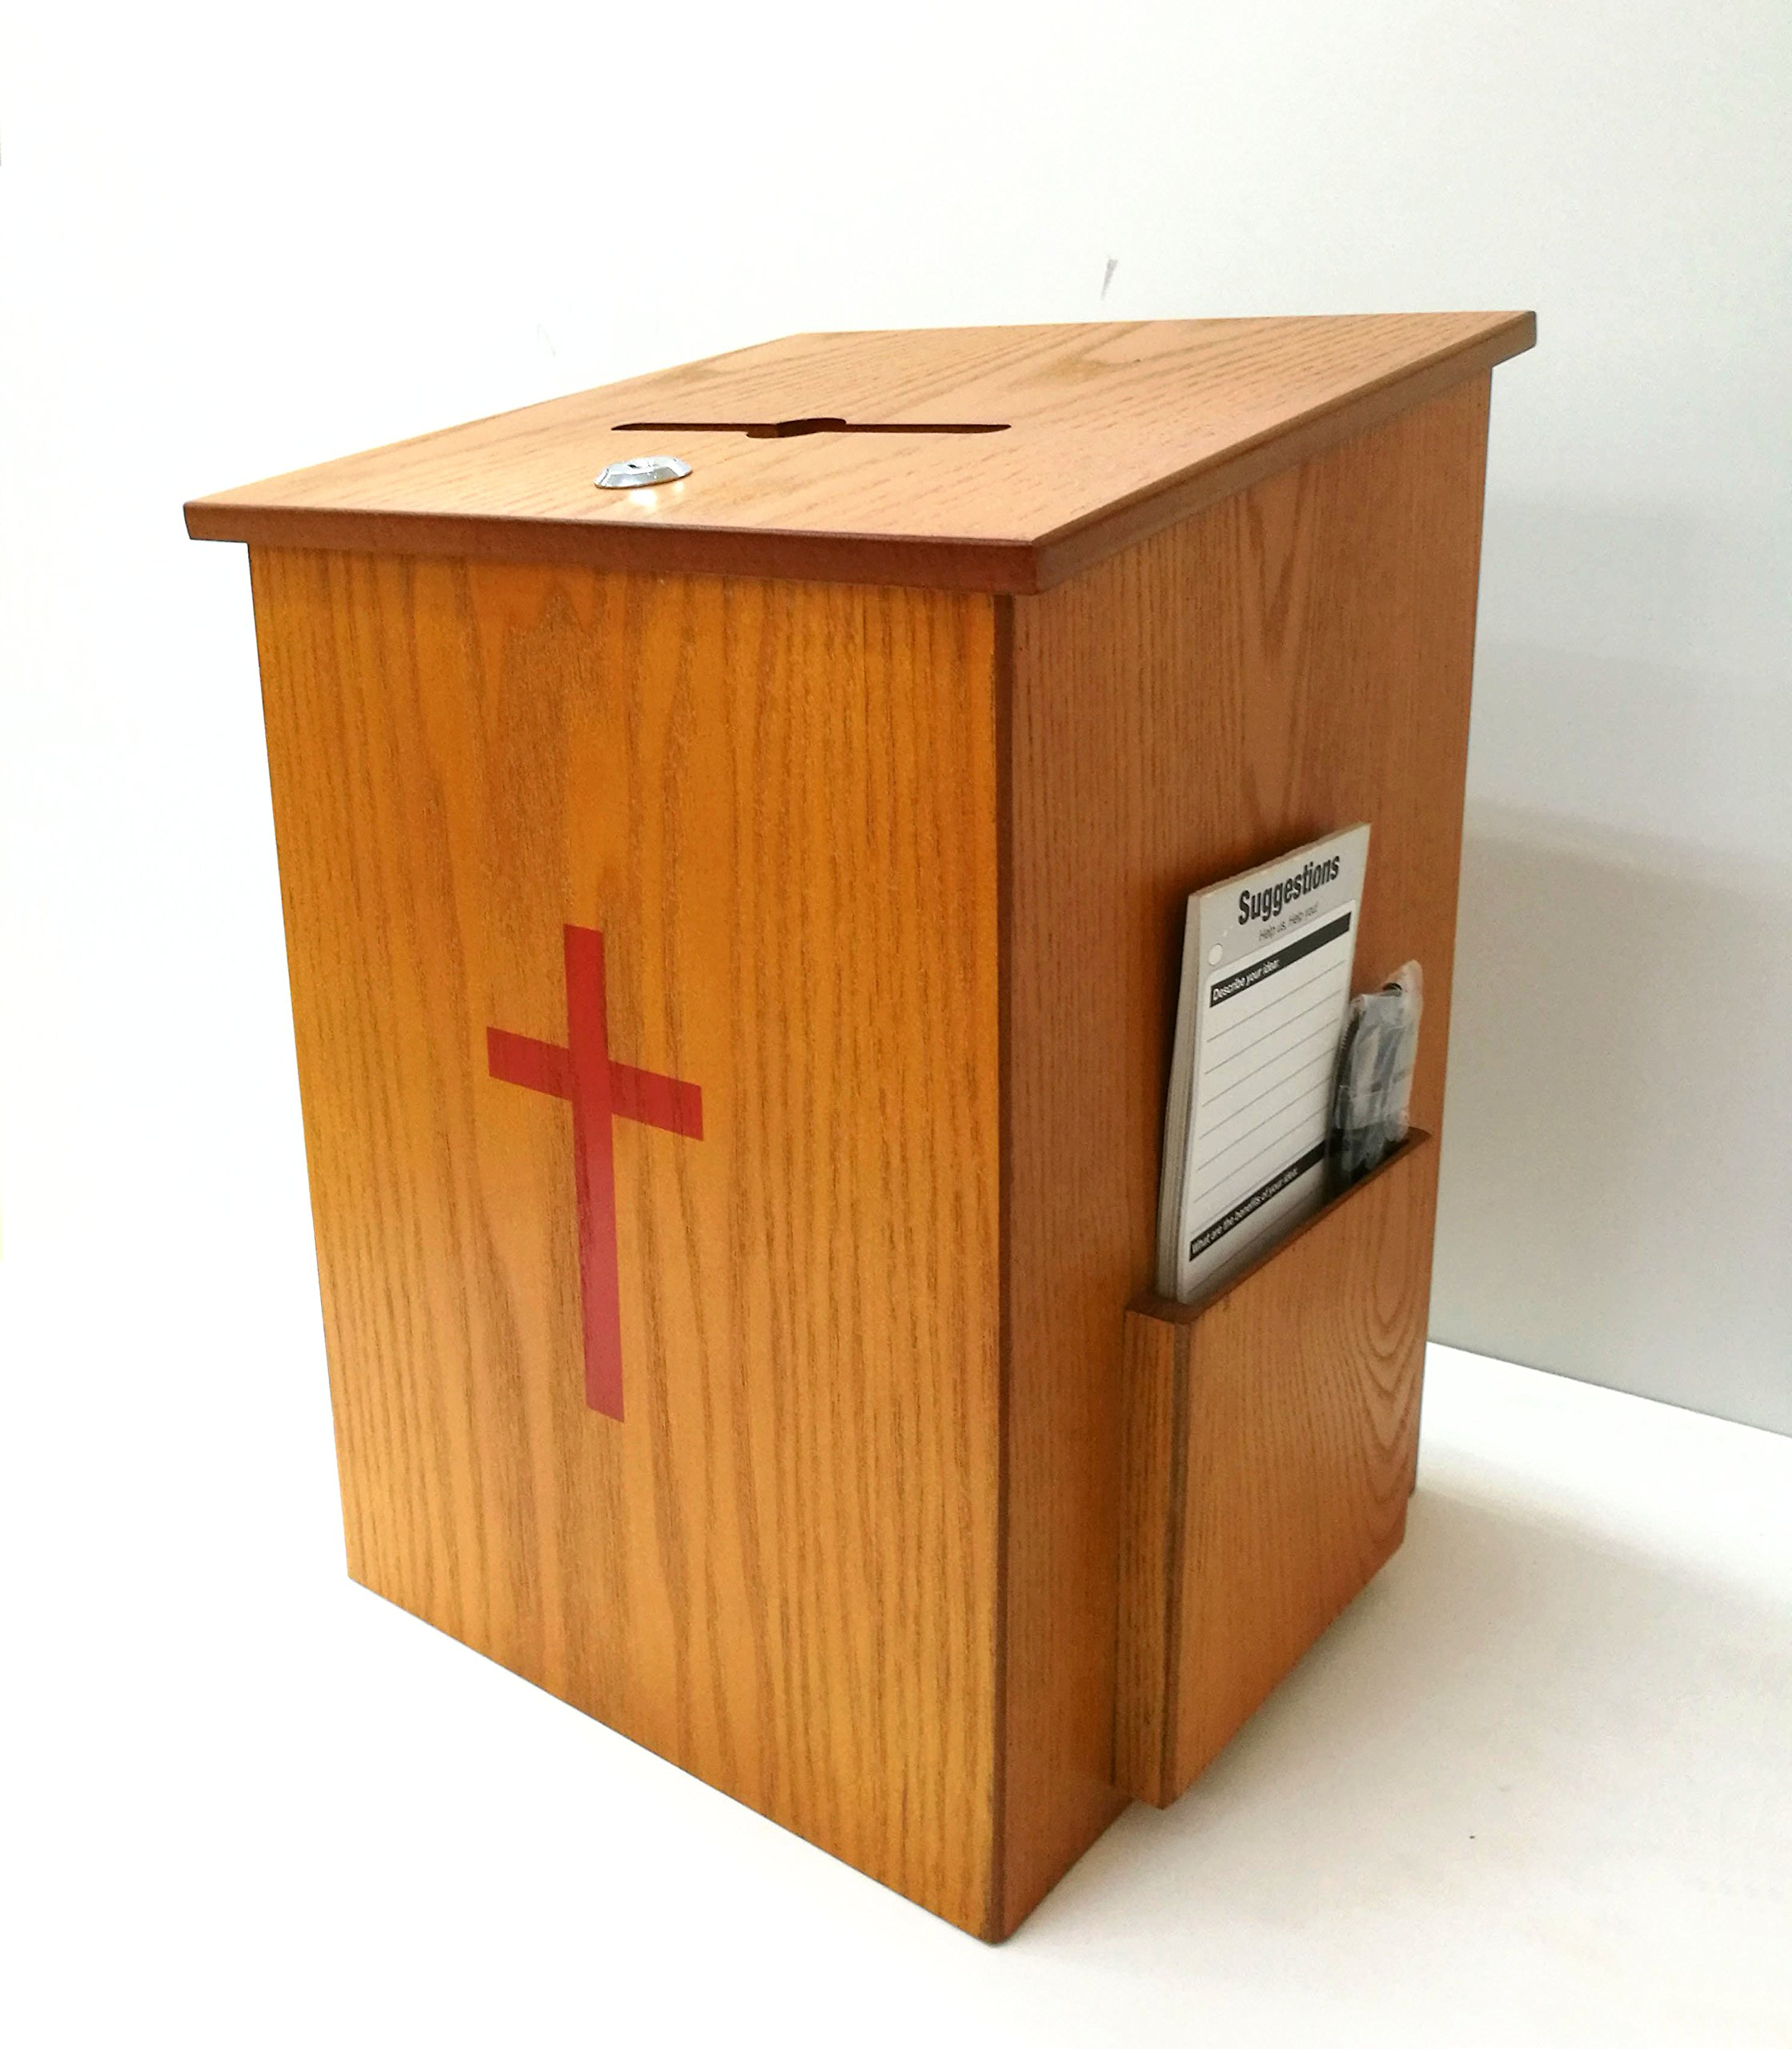 Amazoncom FixtureDisplays Wood Collection Donation Box Church Offering Coin Collection Fundraising Box 10886 Suggestion Boxes Office Products